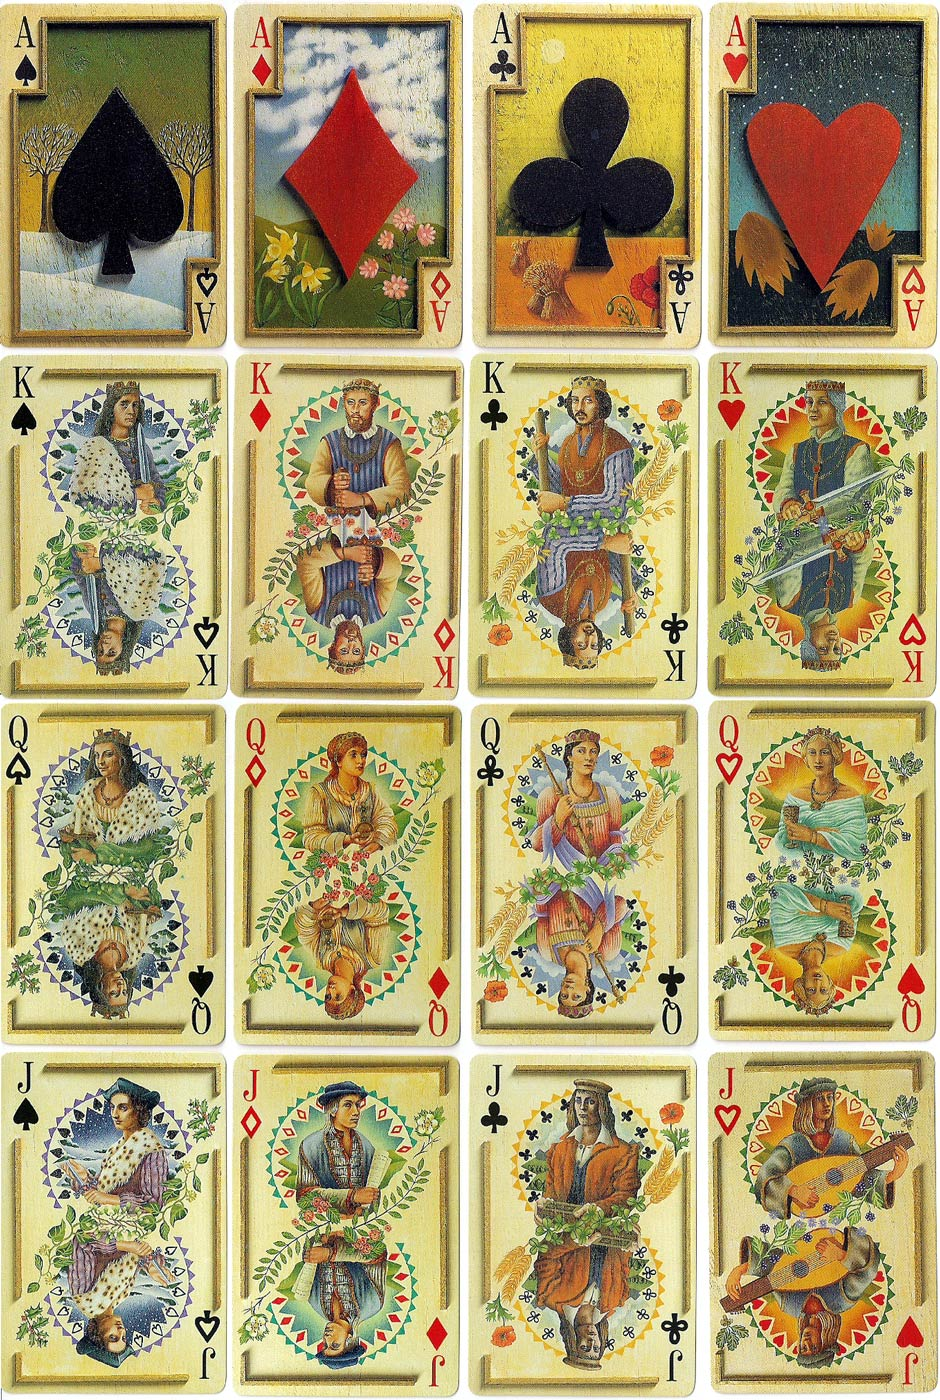 Attractive The Fortune Teller's Deck - The World of Playing Cards CU83